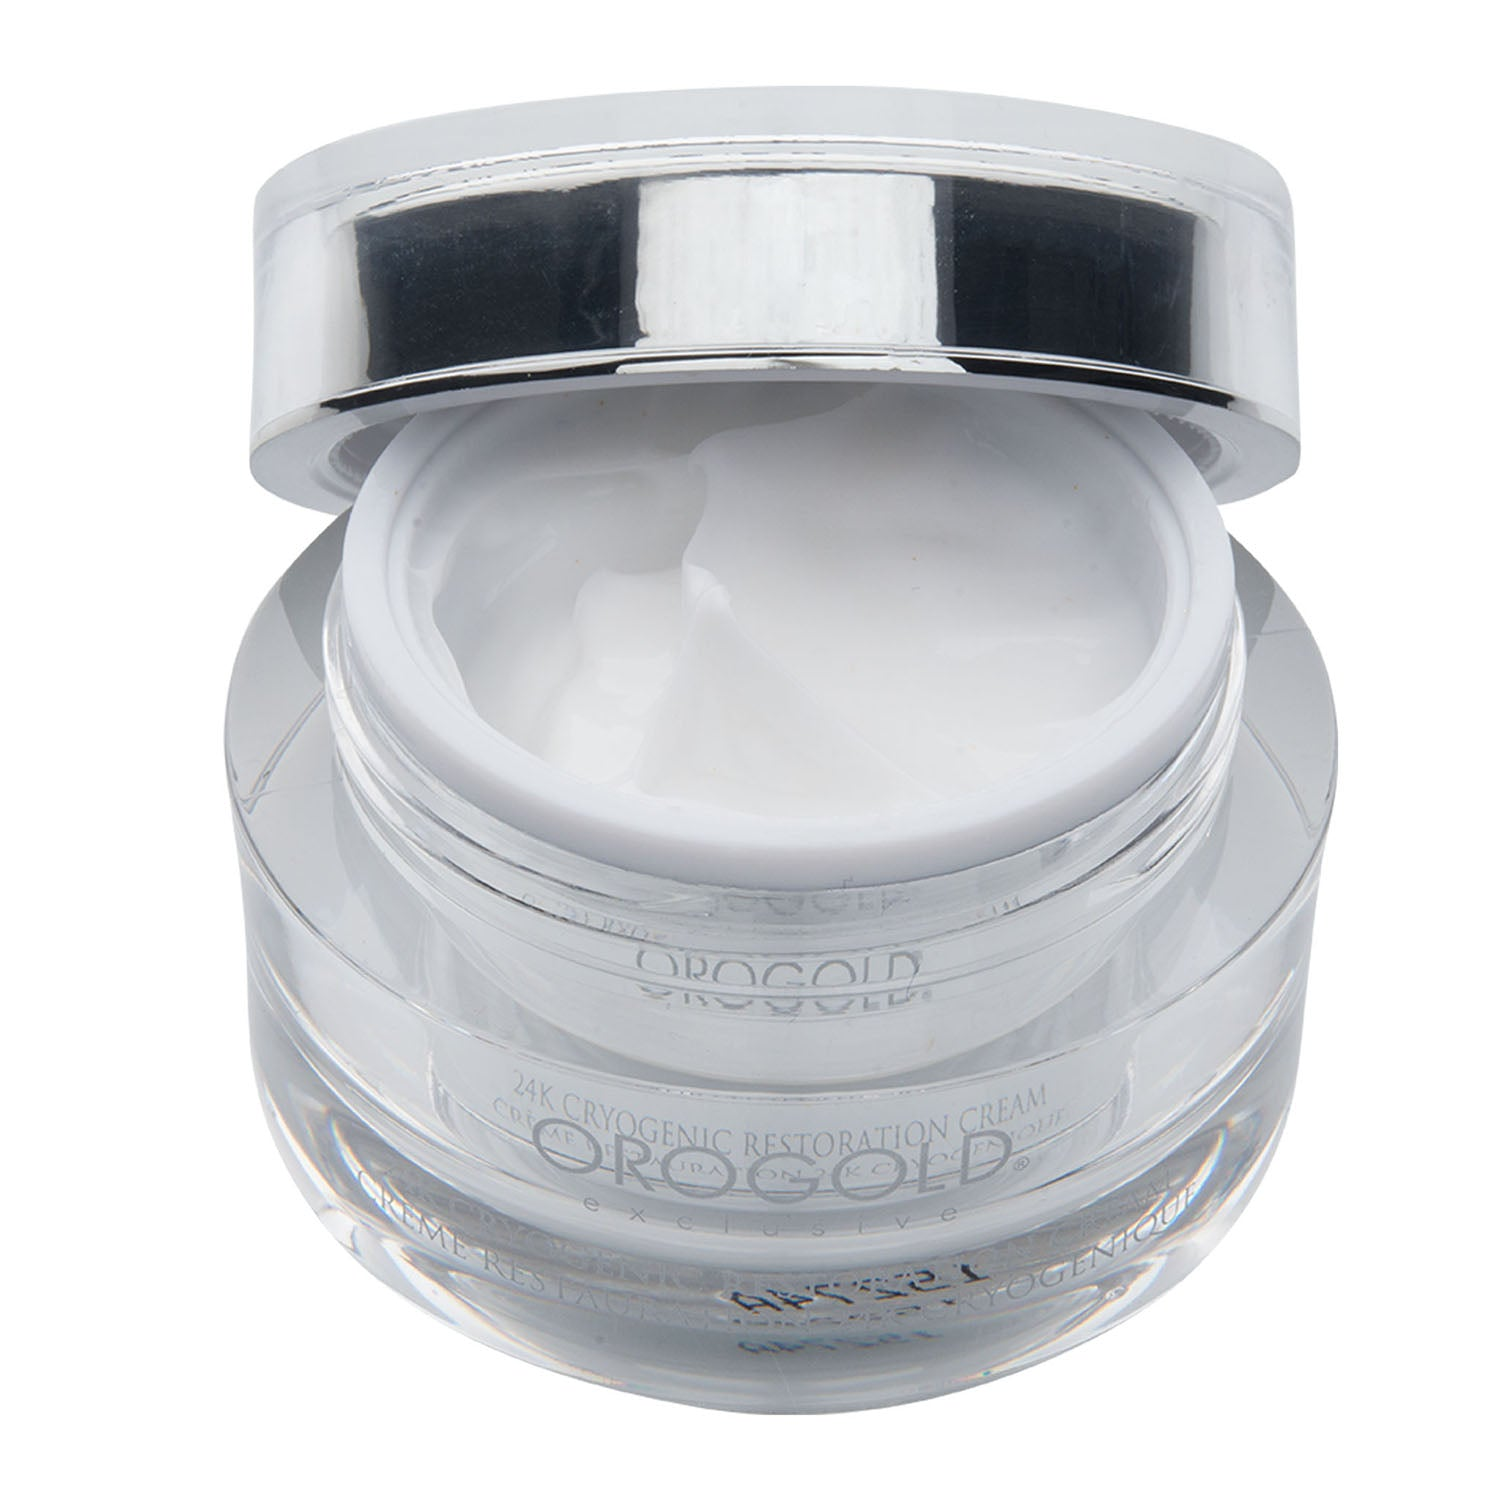 orogold anti wrinkle cream